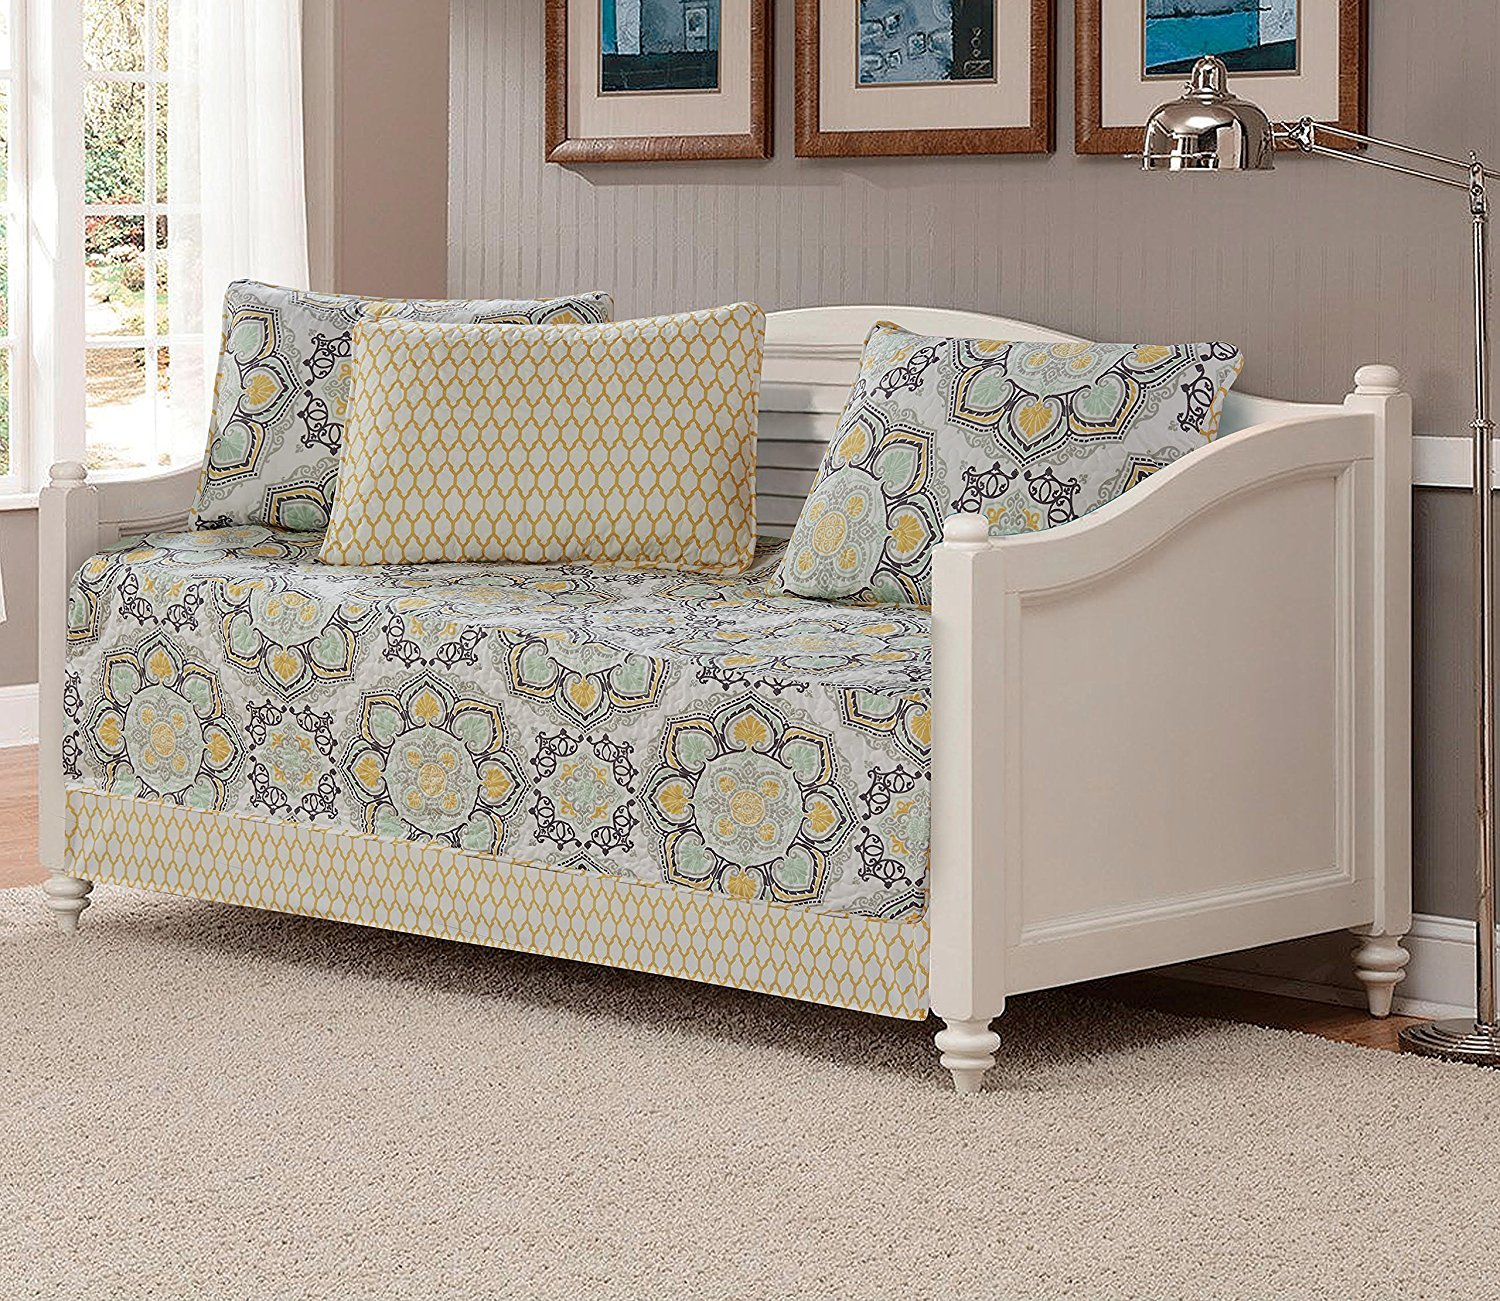 Mk Collection 5pc Day Bed Quilted Cover Set Floral Yellow White Gray Light Green New by MK Home